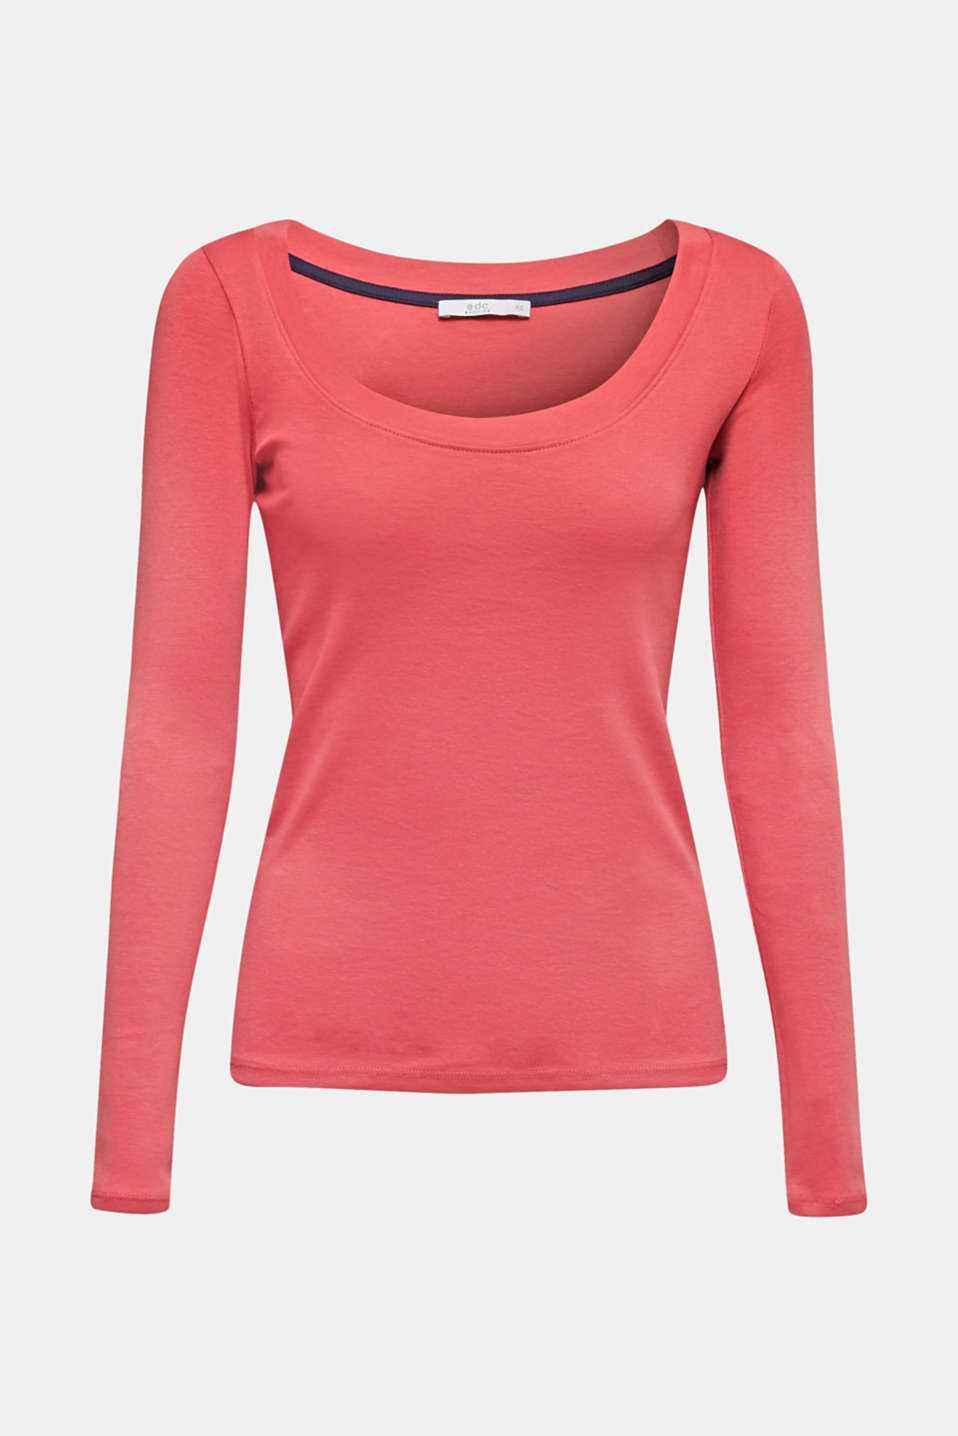 Long sleeve top with a large neckline, 100% cotton, BLUSH 4, detail image number 6